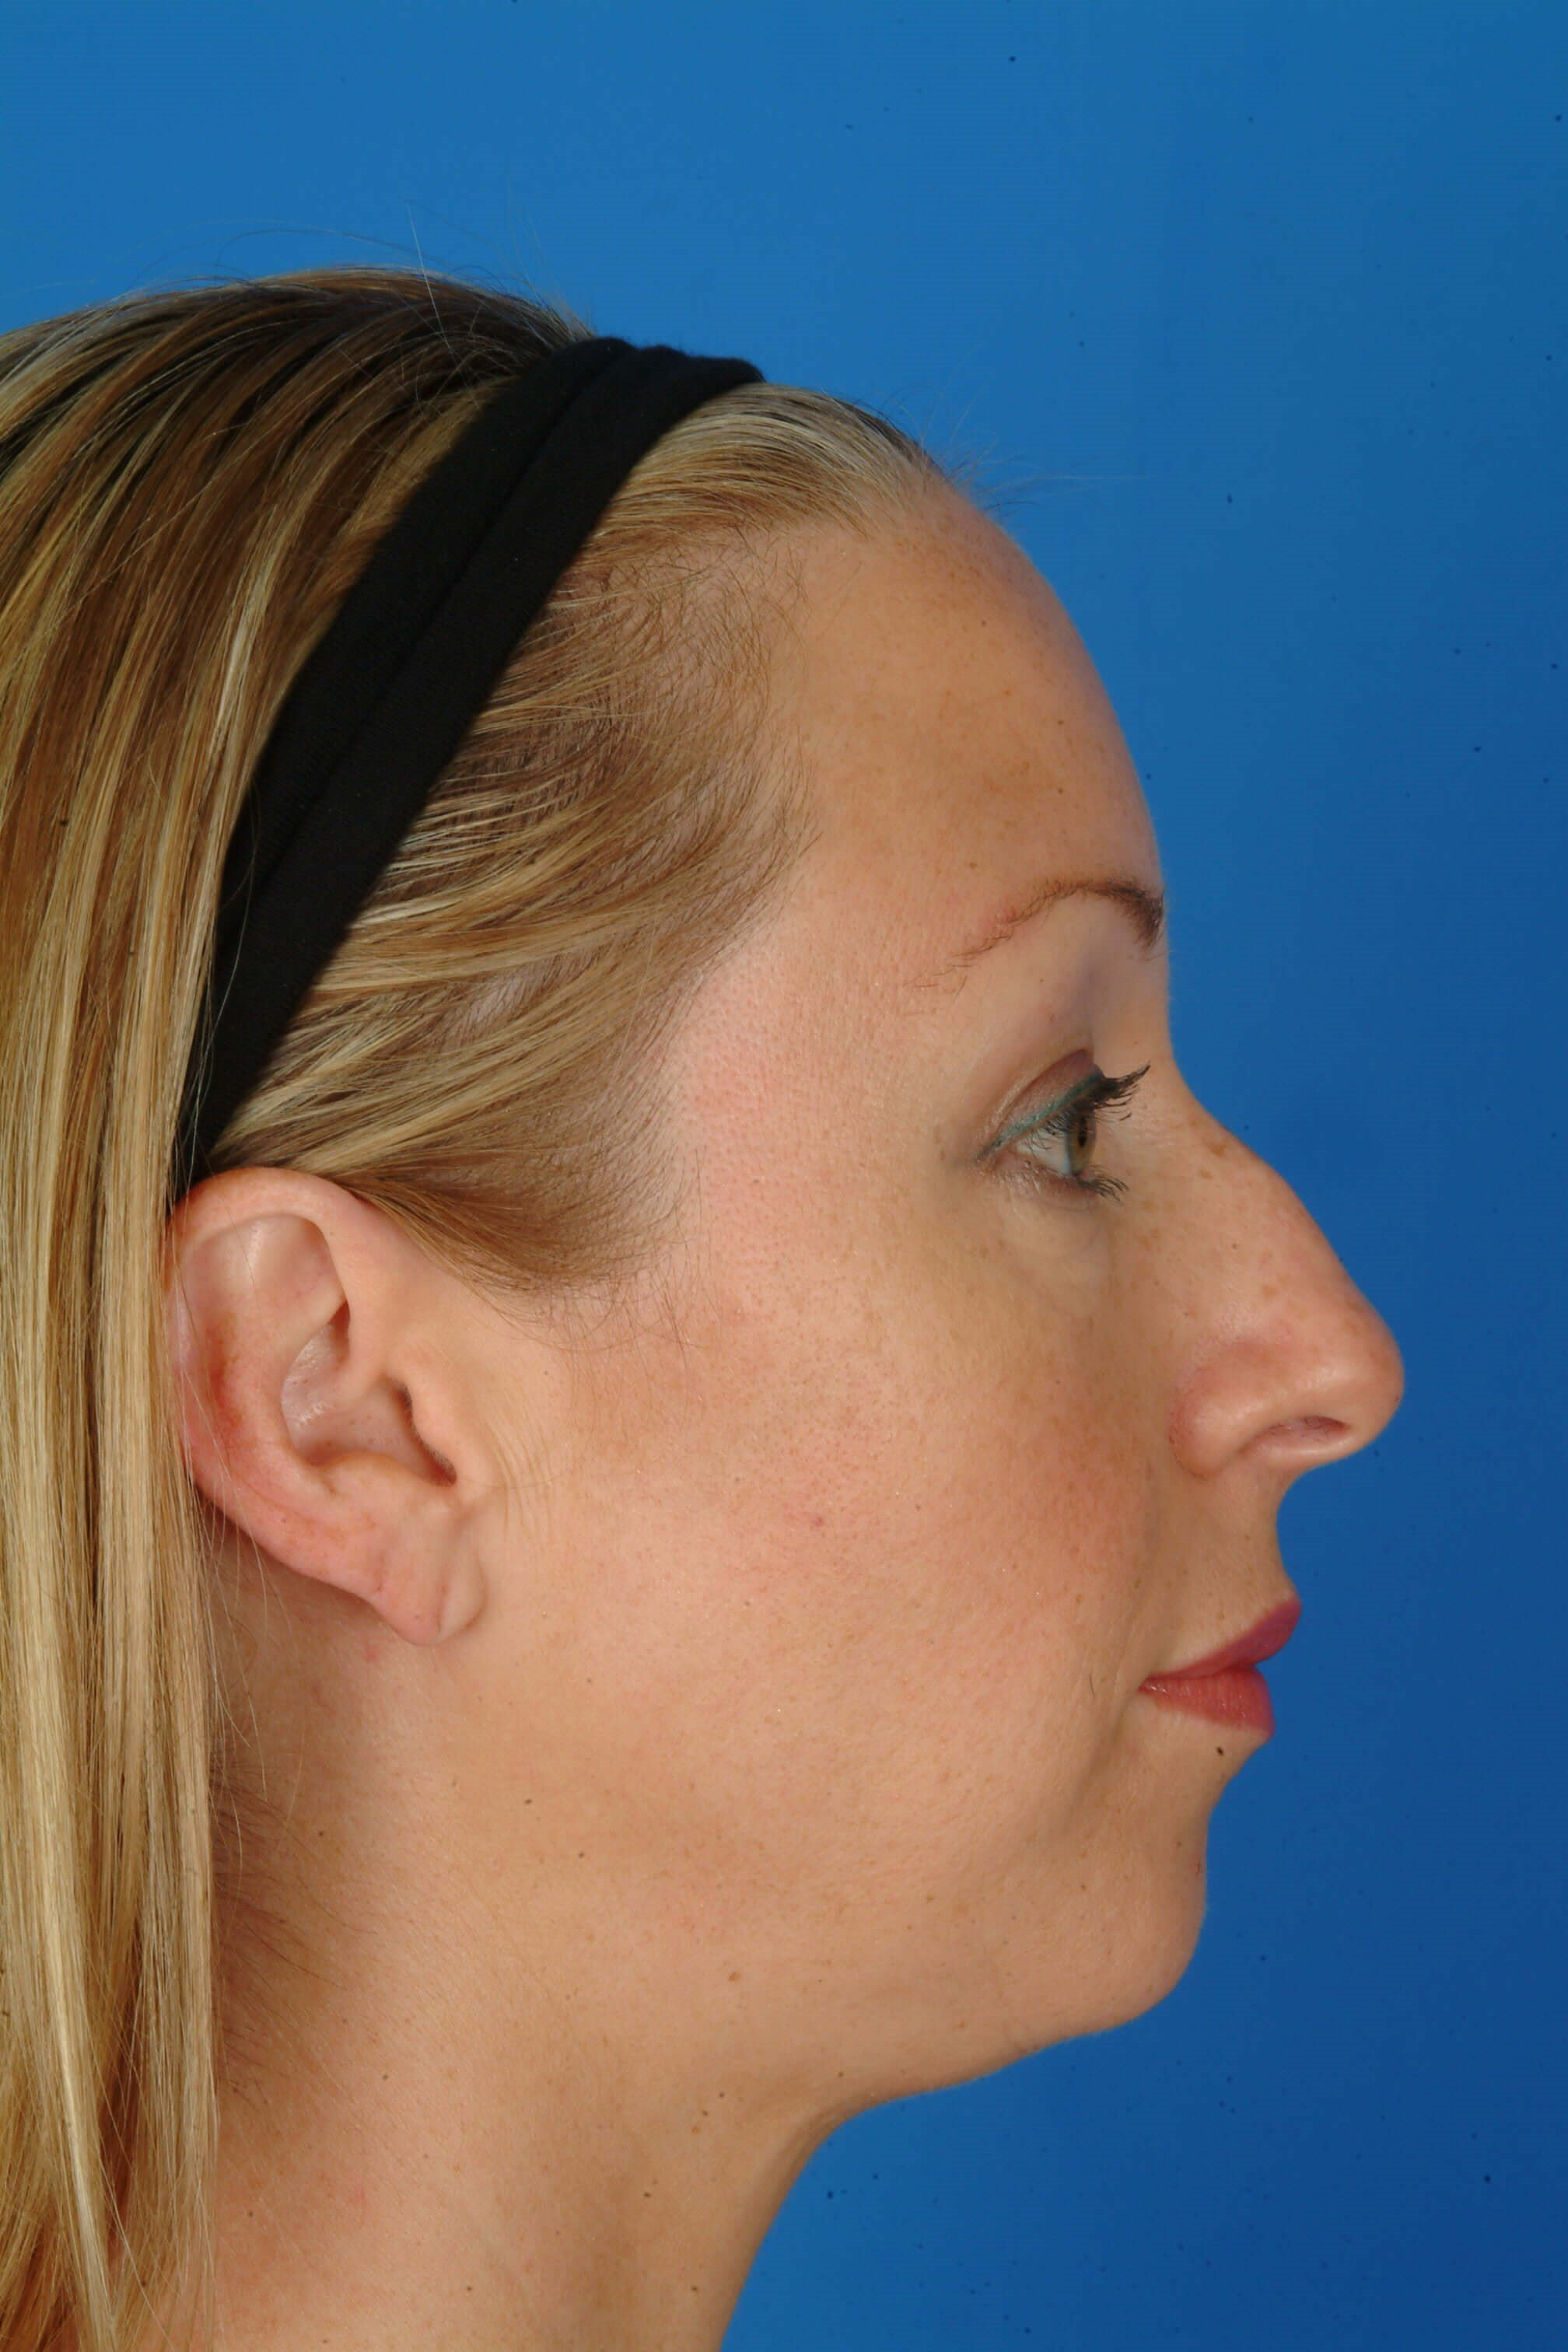 Profile View Before Surgery